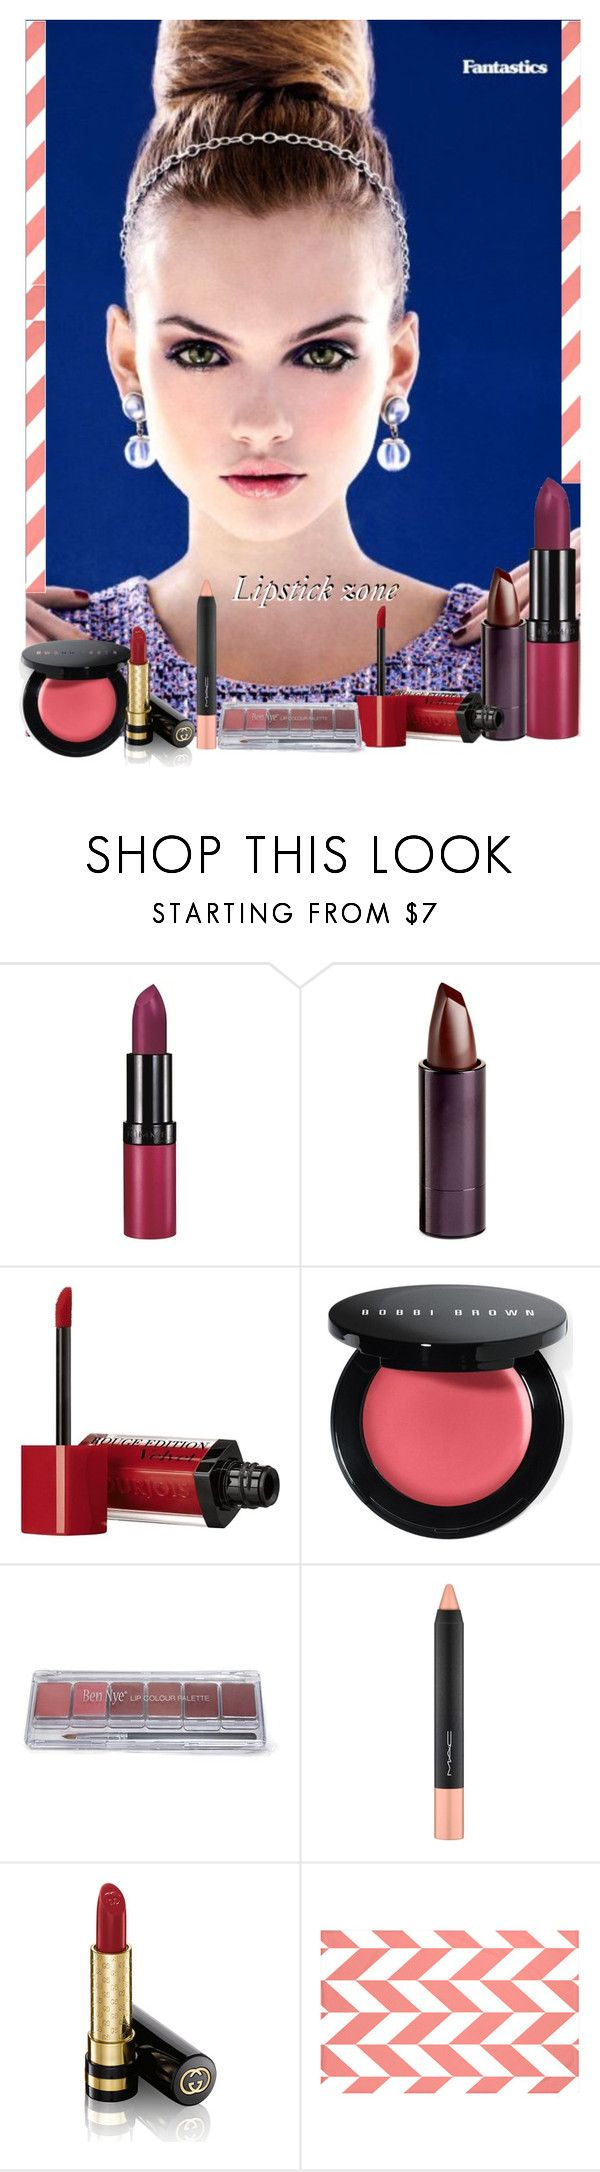 """""""Lipstick zone!"""" by lurve-music ❤ liked on Polyvore featuring beauty, Rimmel, Serge Lutens Beauté, Bourjois, Bobbi Brown Cosmetics, MAC Cosmetics, Gucci and e by design"""